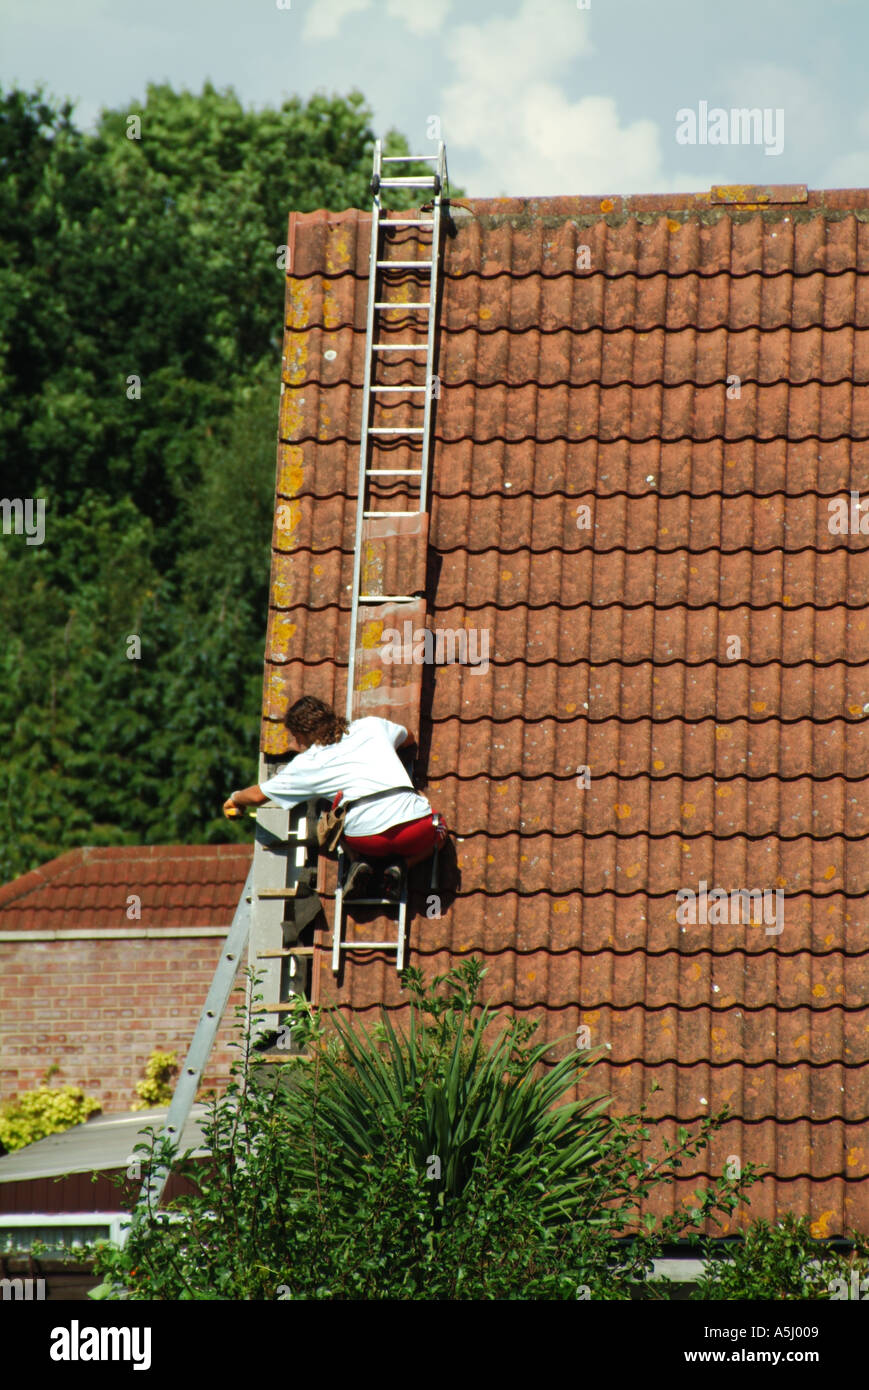 Roof tile repairs in progress at verge to detached house - Stock Image